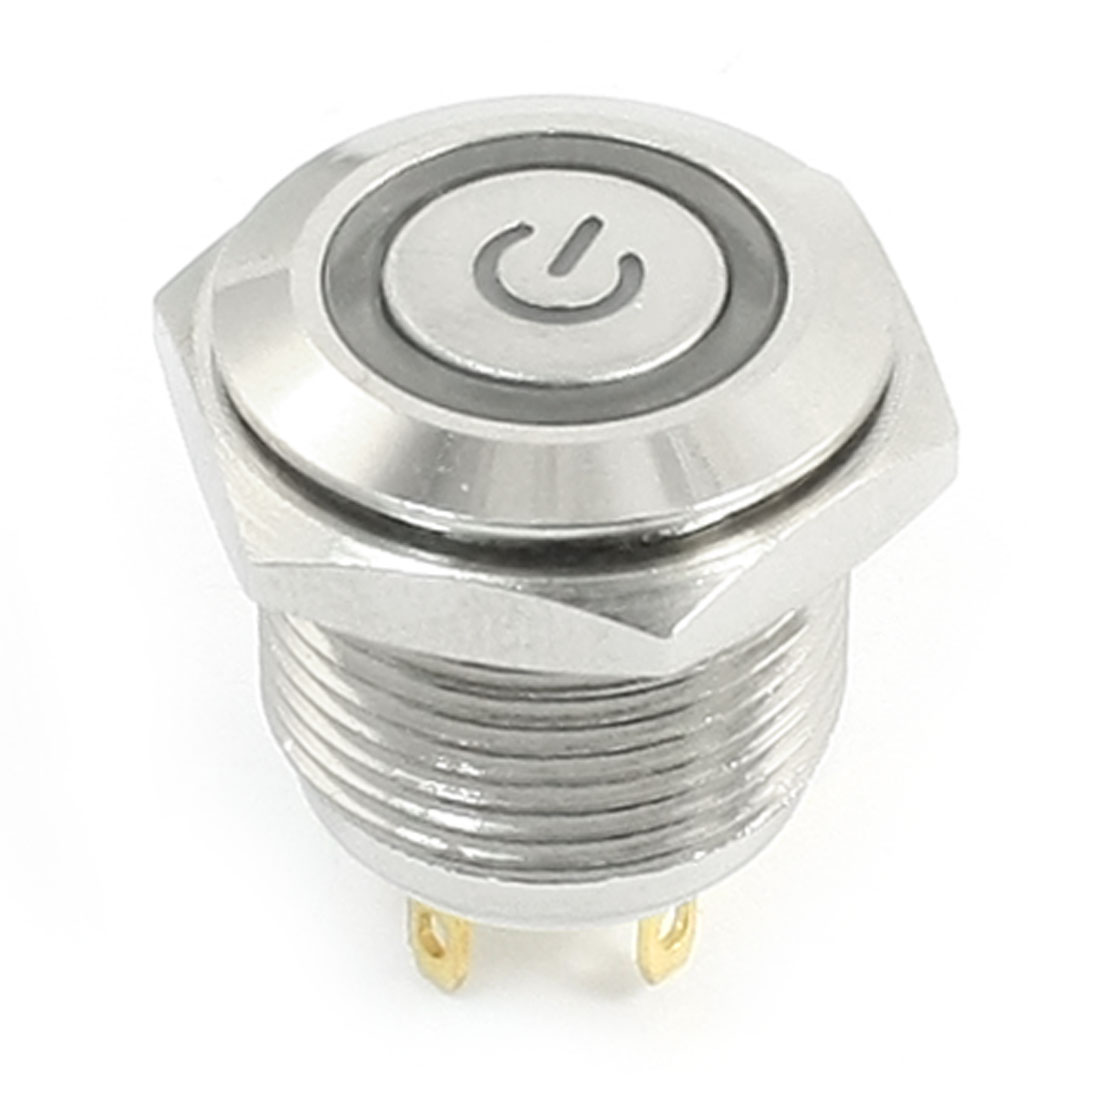 DC 12V Red Angel Eye Indicative LED SPST Flat Head Momentary Metal Power Push Button Switch 16mm Thread